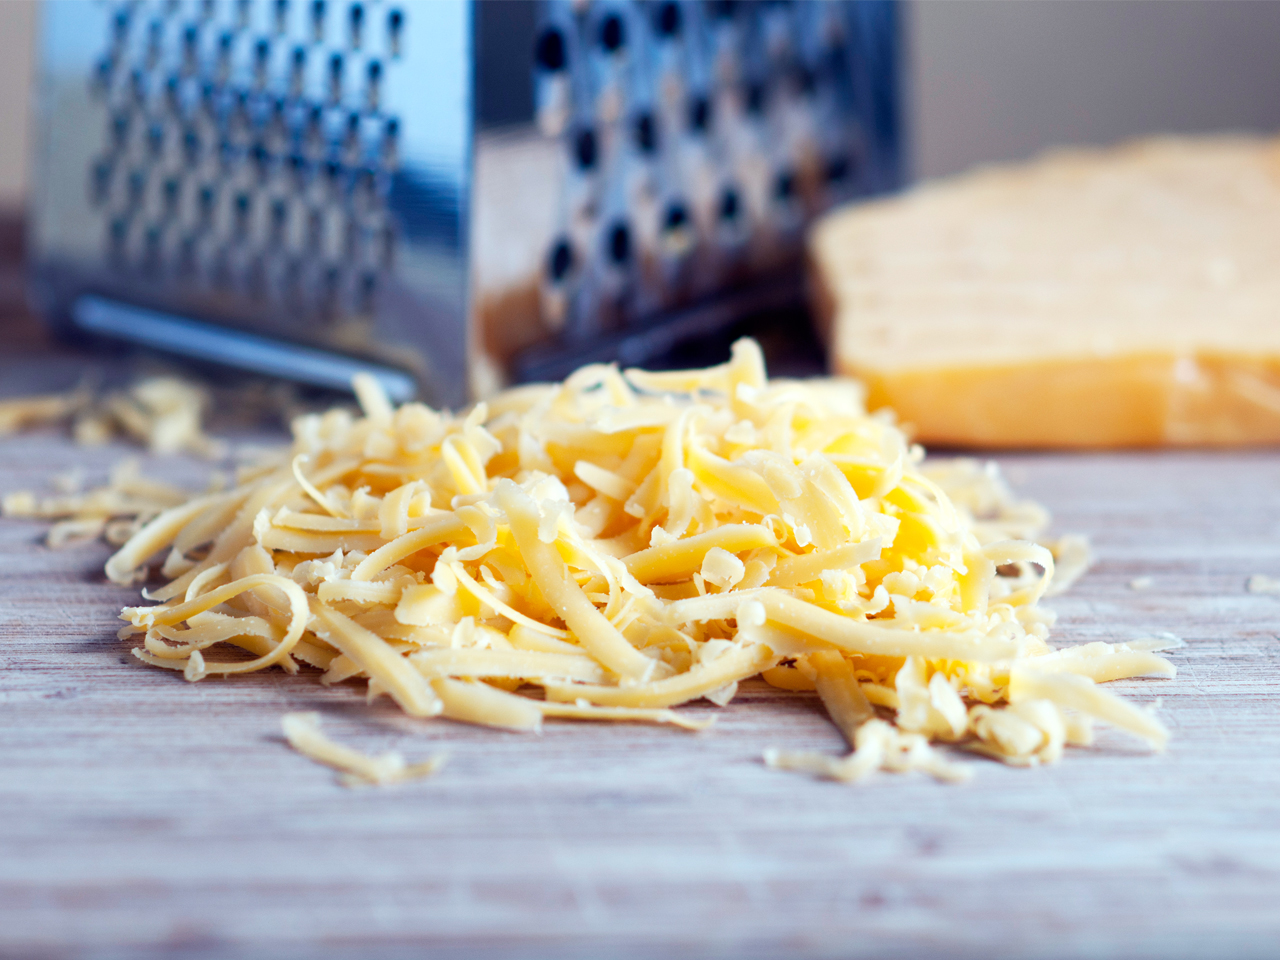 Pile of shredded cheese in front of box grater